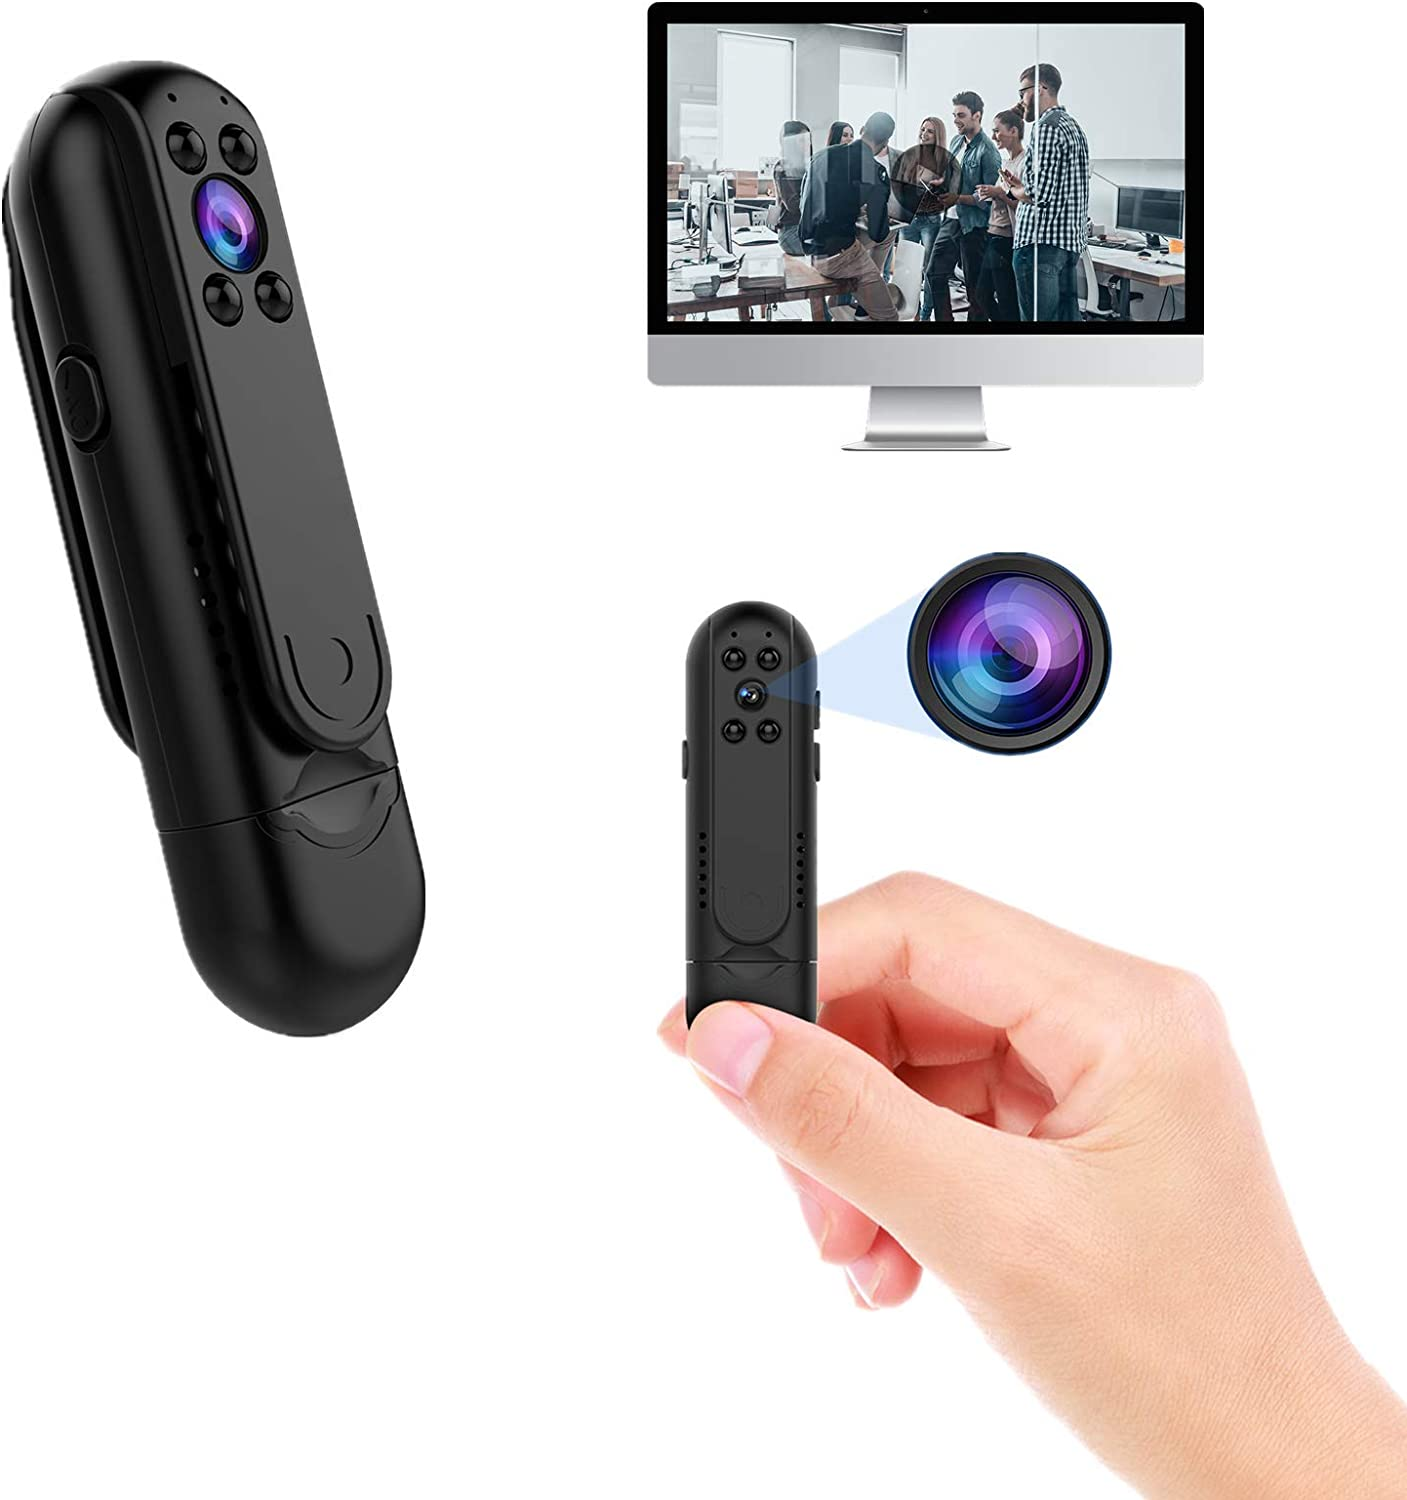 Mini Body Camera 1080P HD Portable Small Security Video Recorder Tiny Covert Nanny Cam Without WiFi Cop Cam Night Visionwith Clips for Home, Office, Business, Meeting, Interview